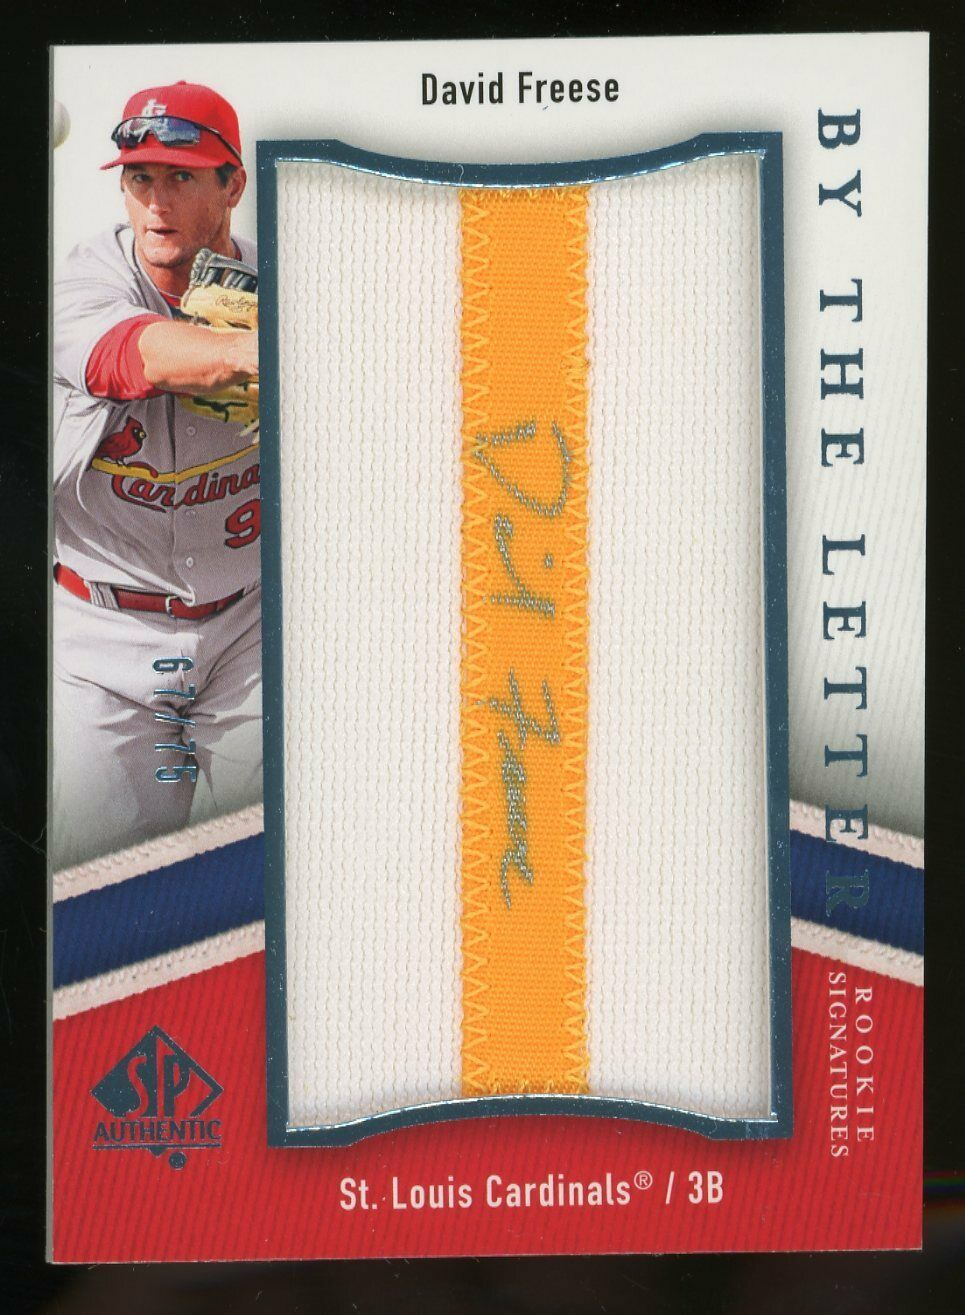 2009 SP Authentic David Freese Cardinals By The Letter Patch AUTO 67/75 - $10.50